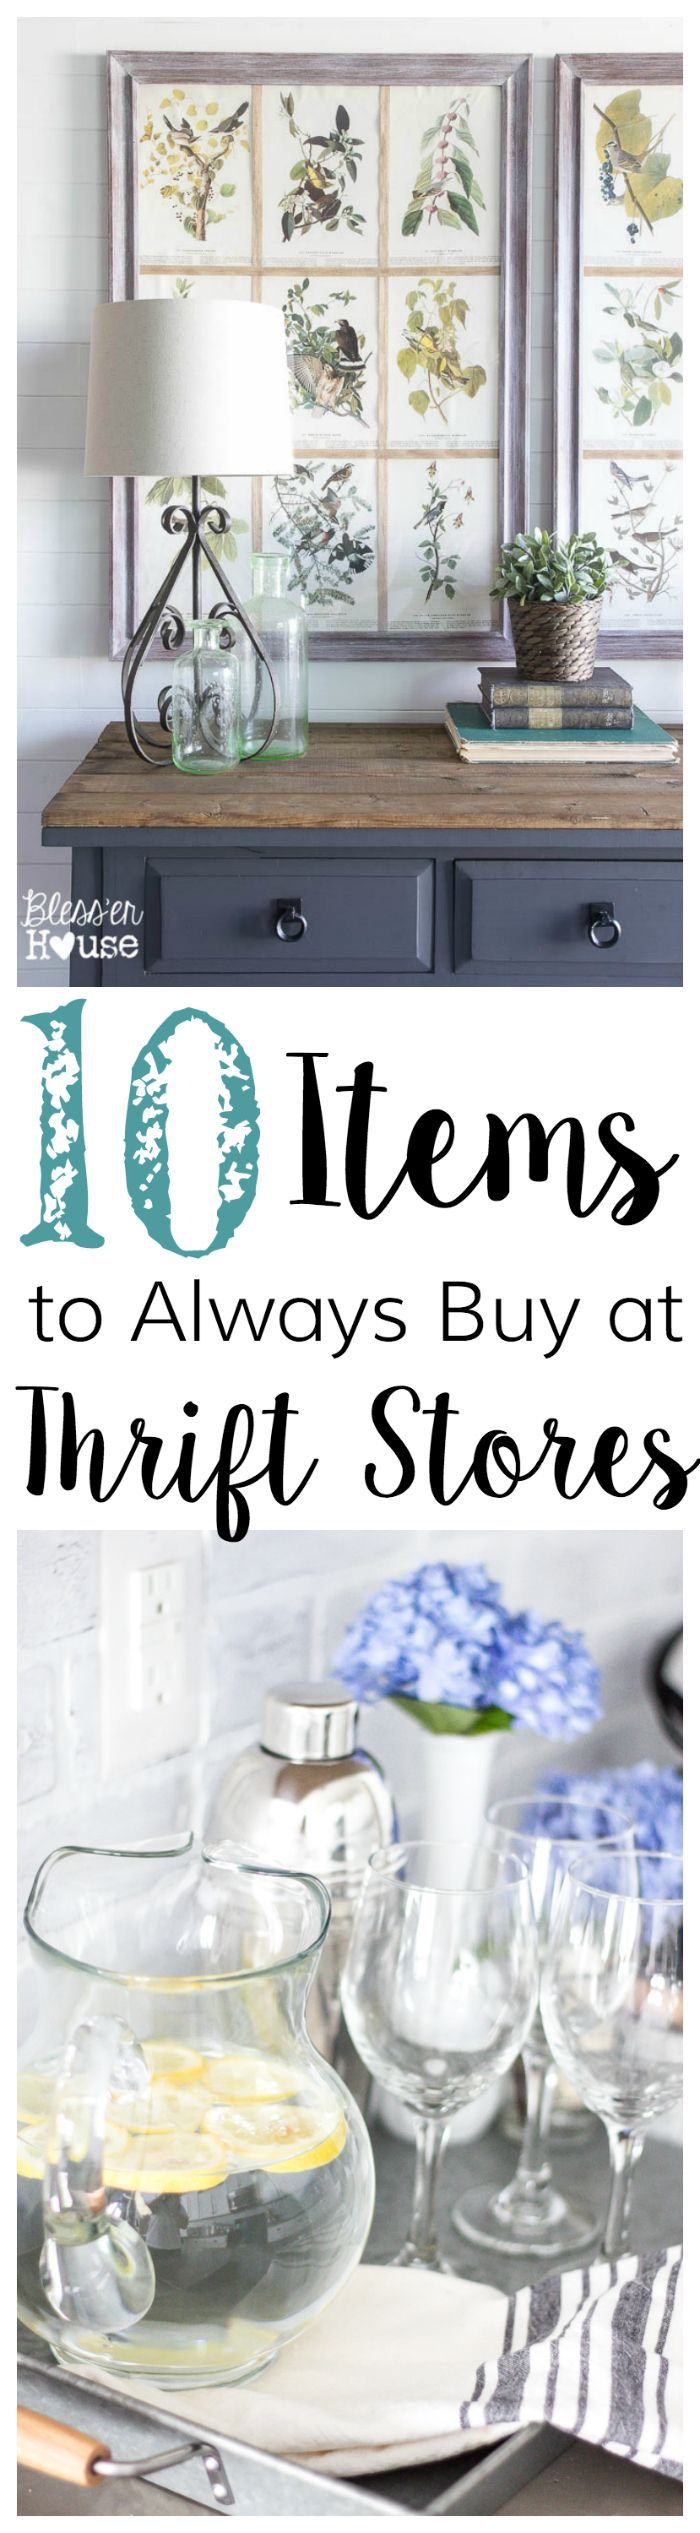 10 Items to Always Buy at Thrift Stores - Bless'er House